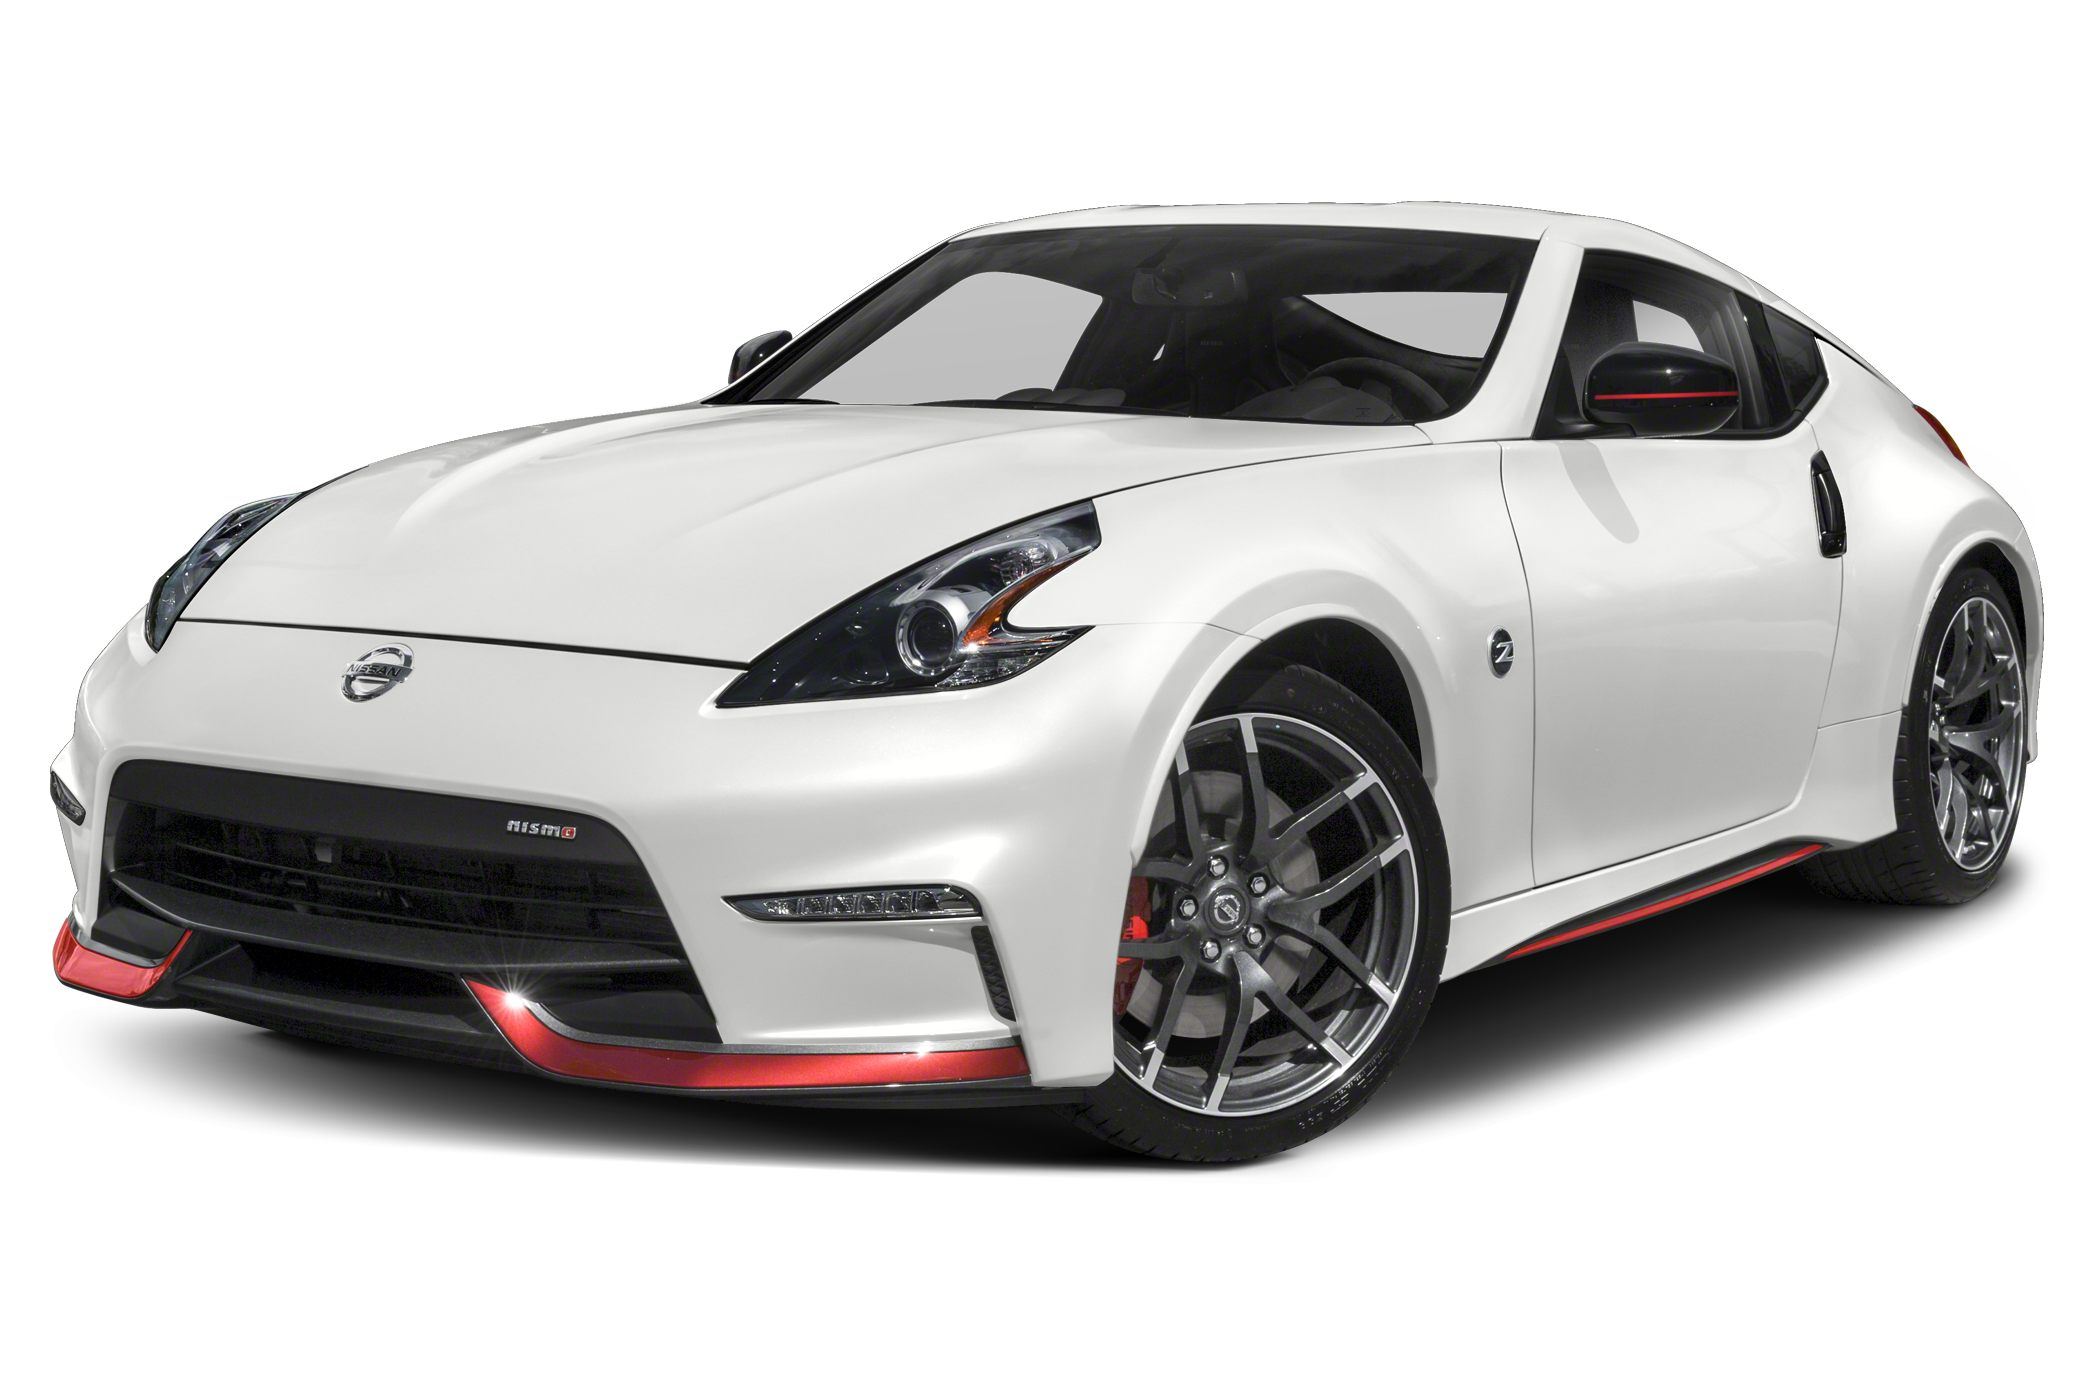 2020 Nissan 370z Nismo 2dr Coupe Specs And Prices